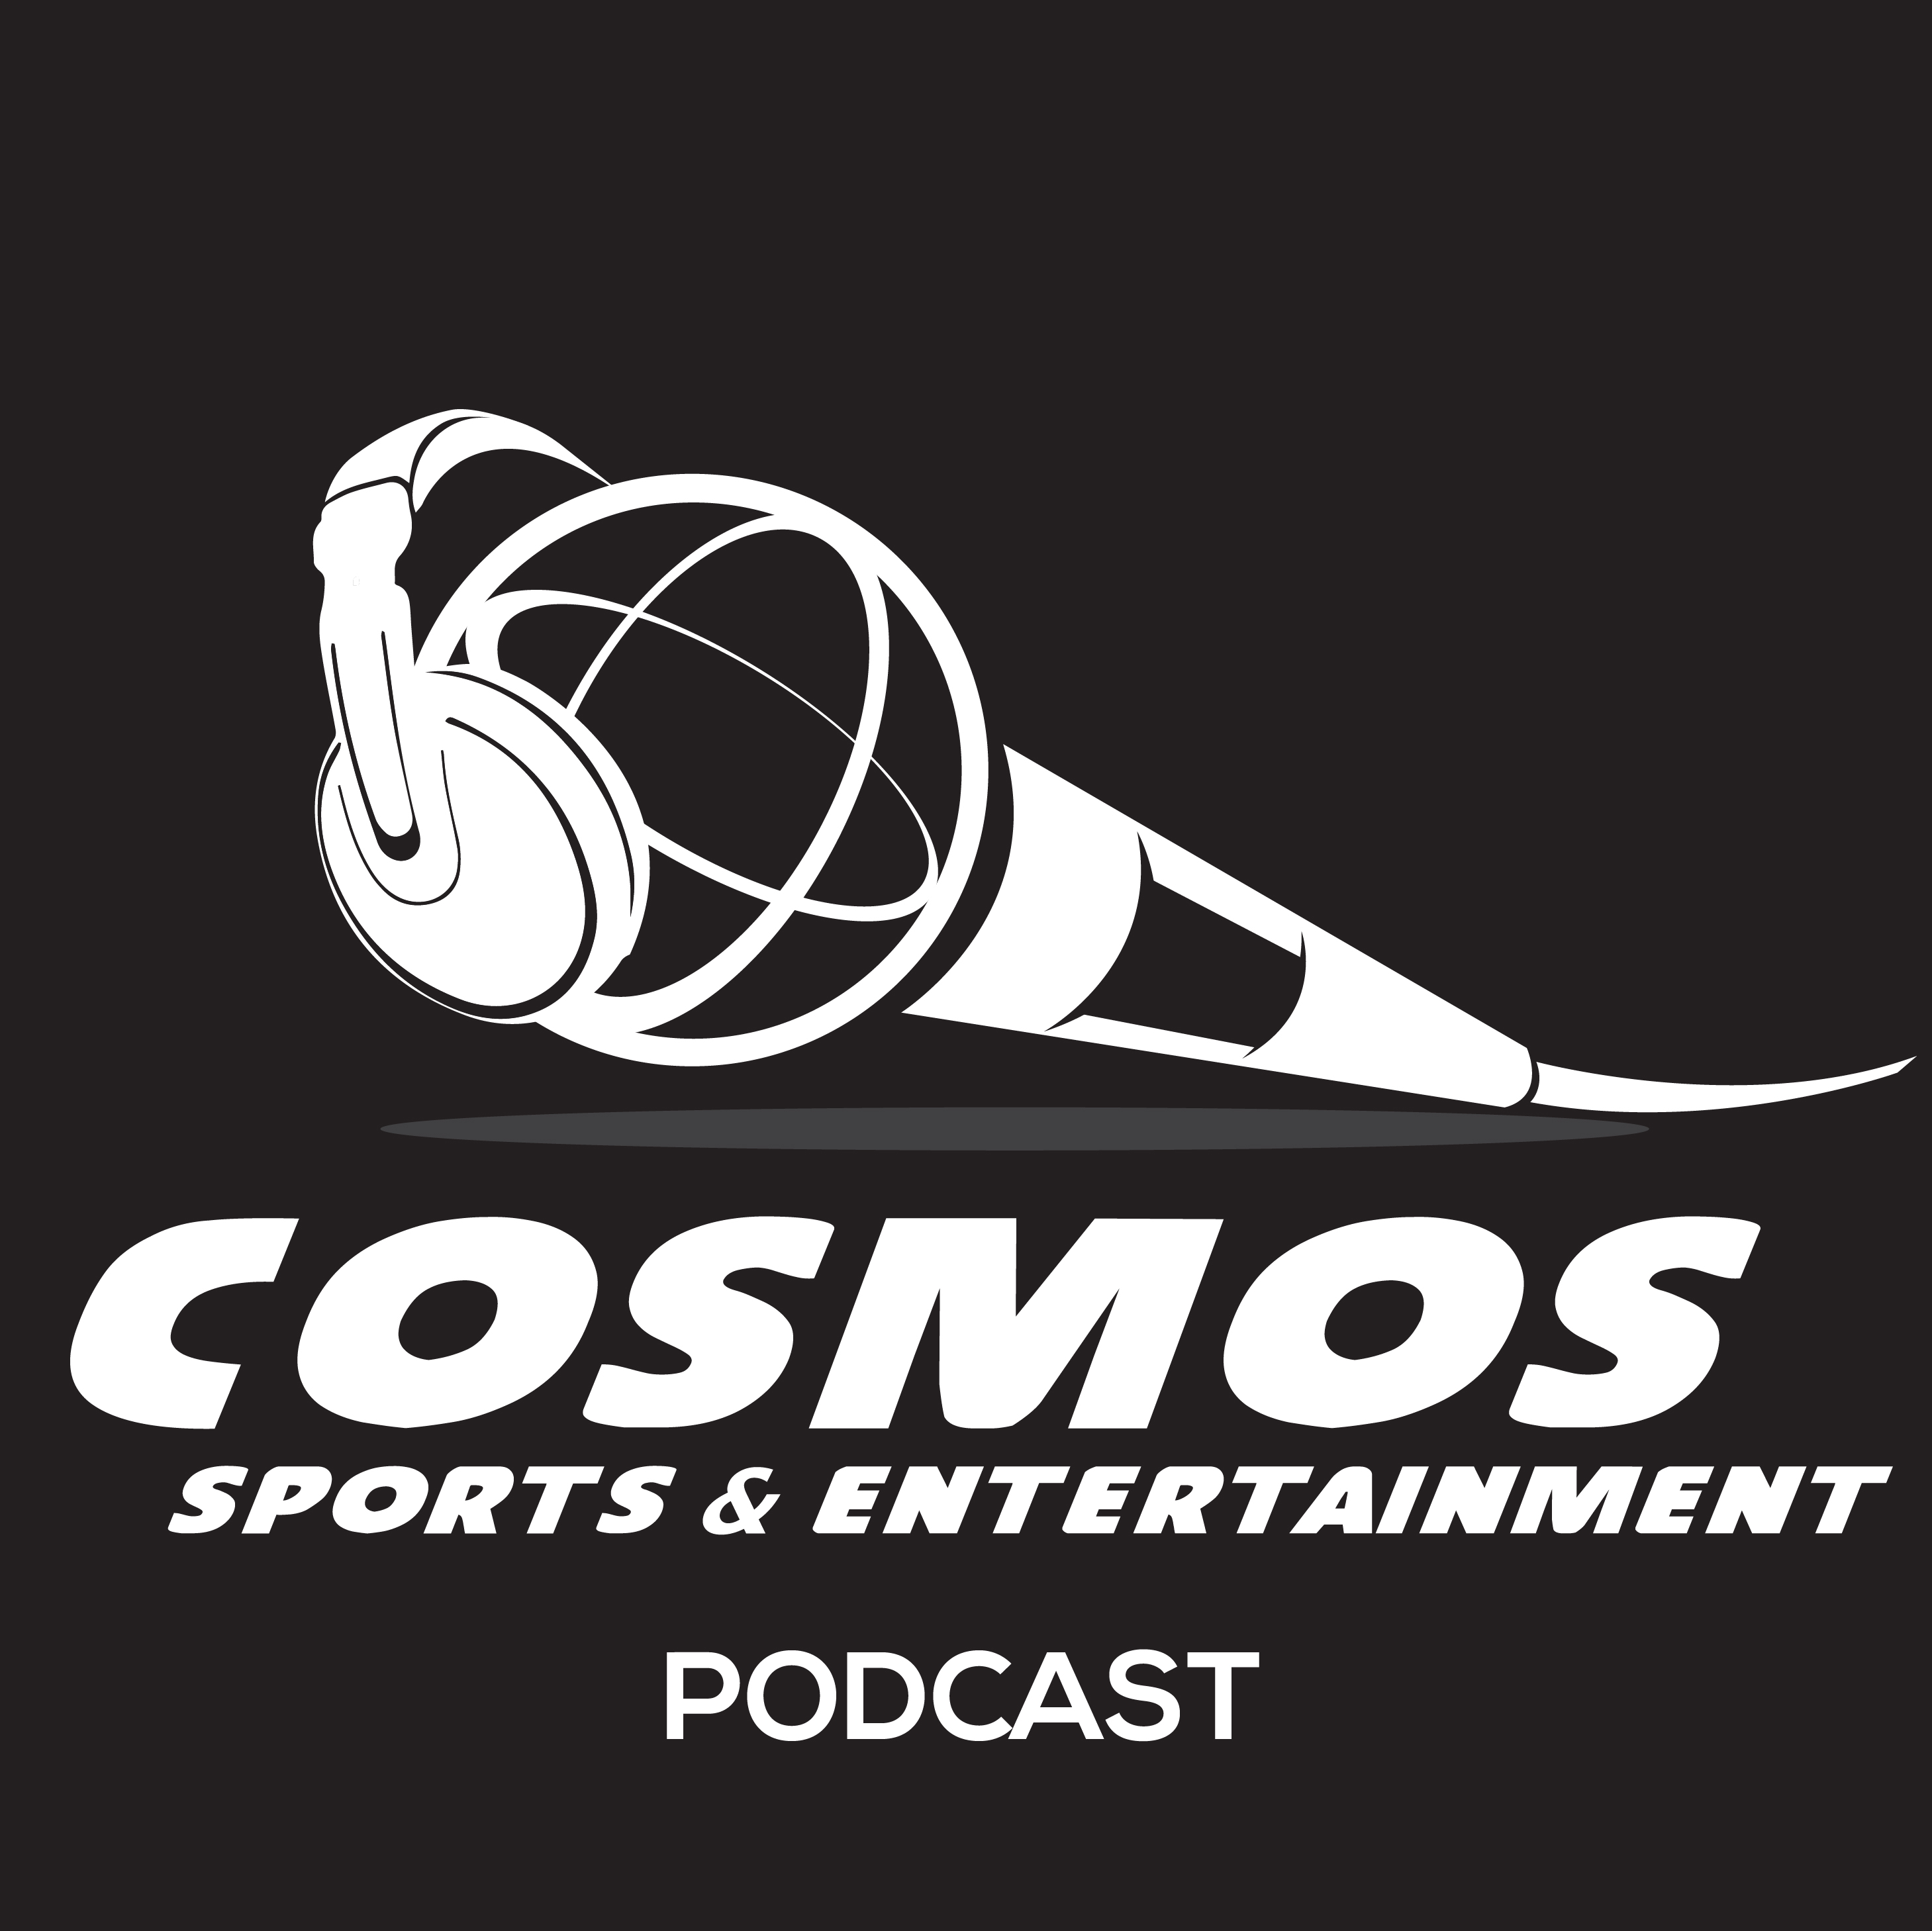 The Cosmos Podcast